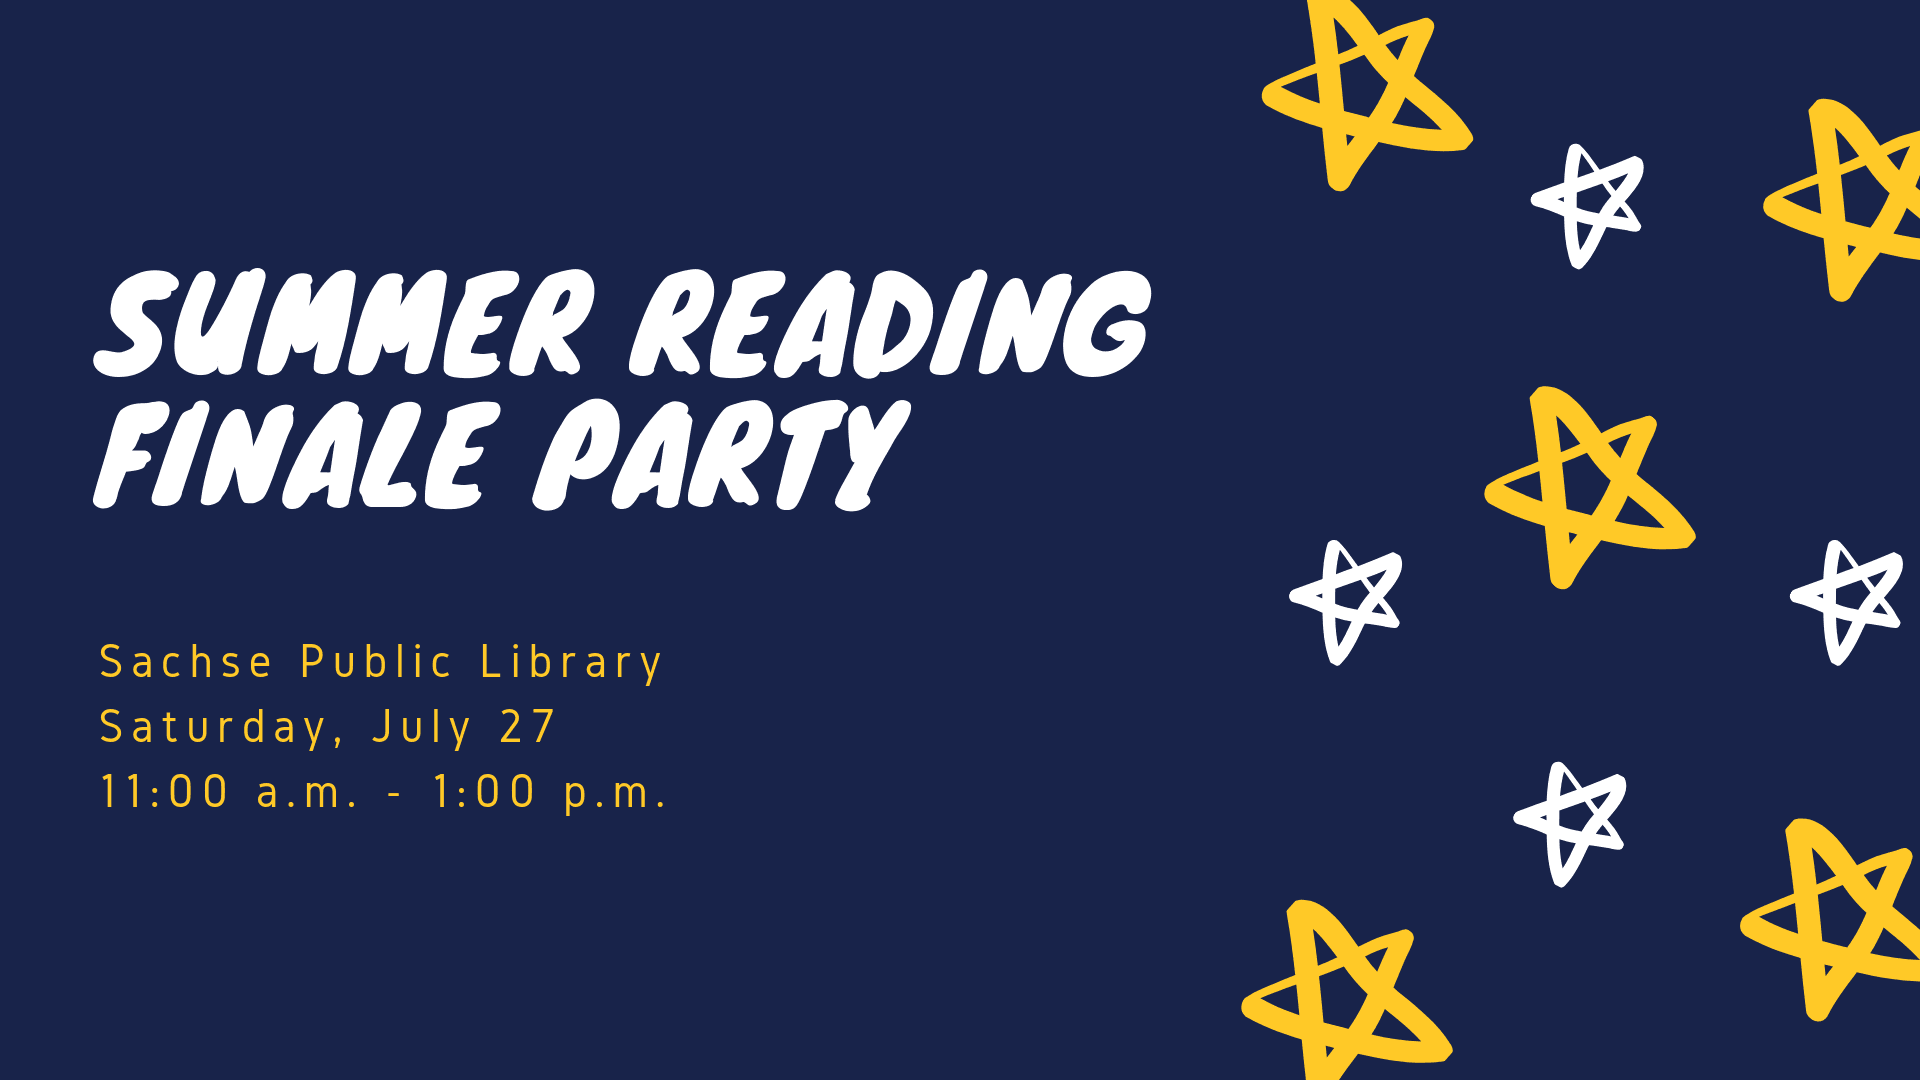 Summer Reading Finale Party